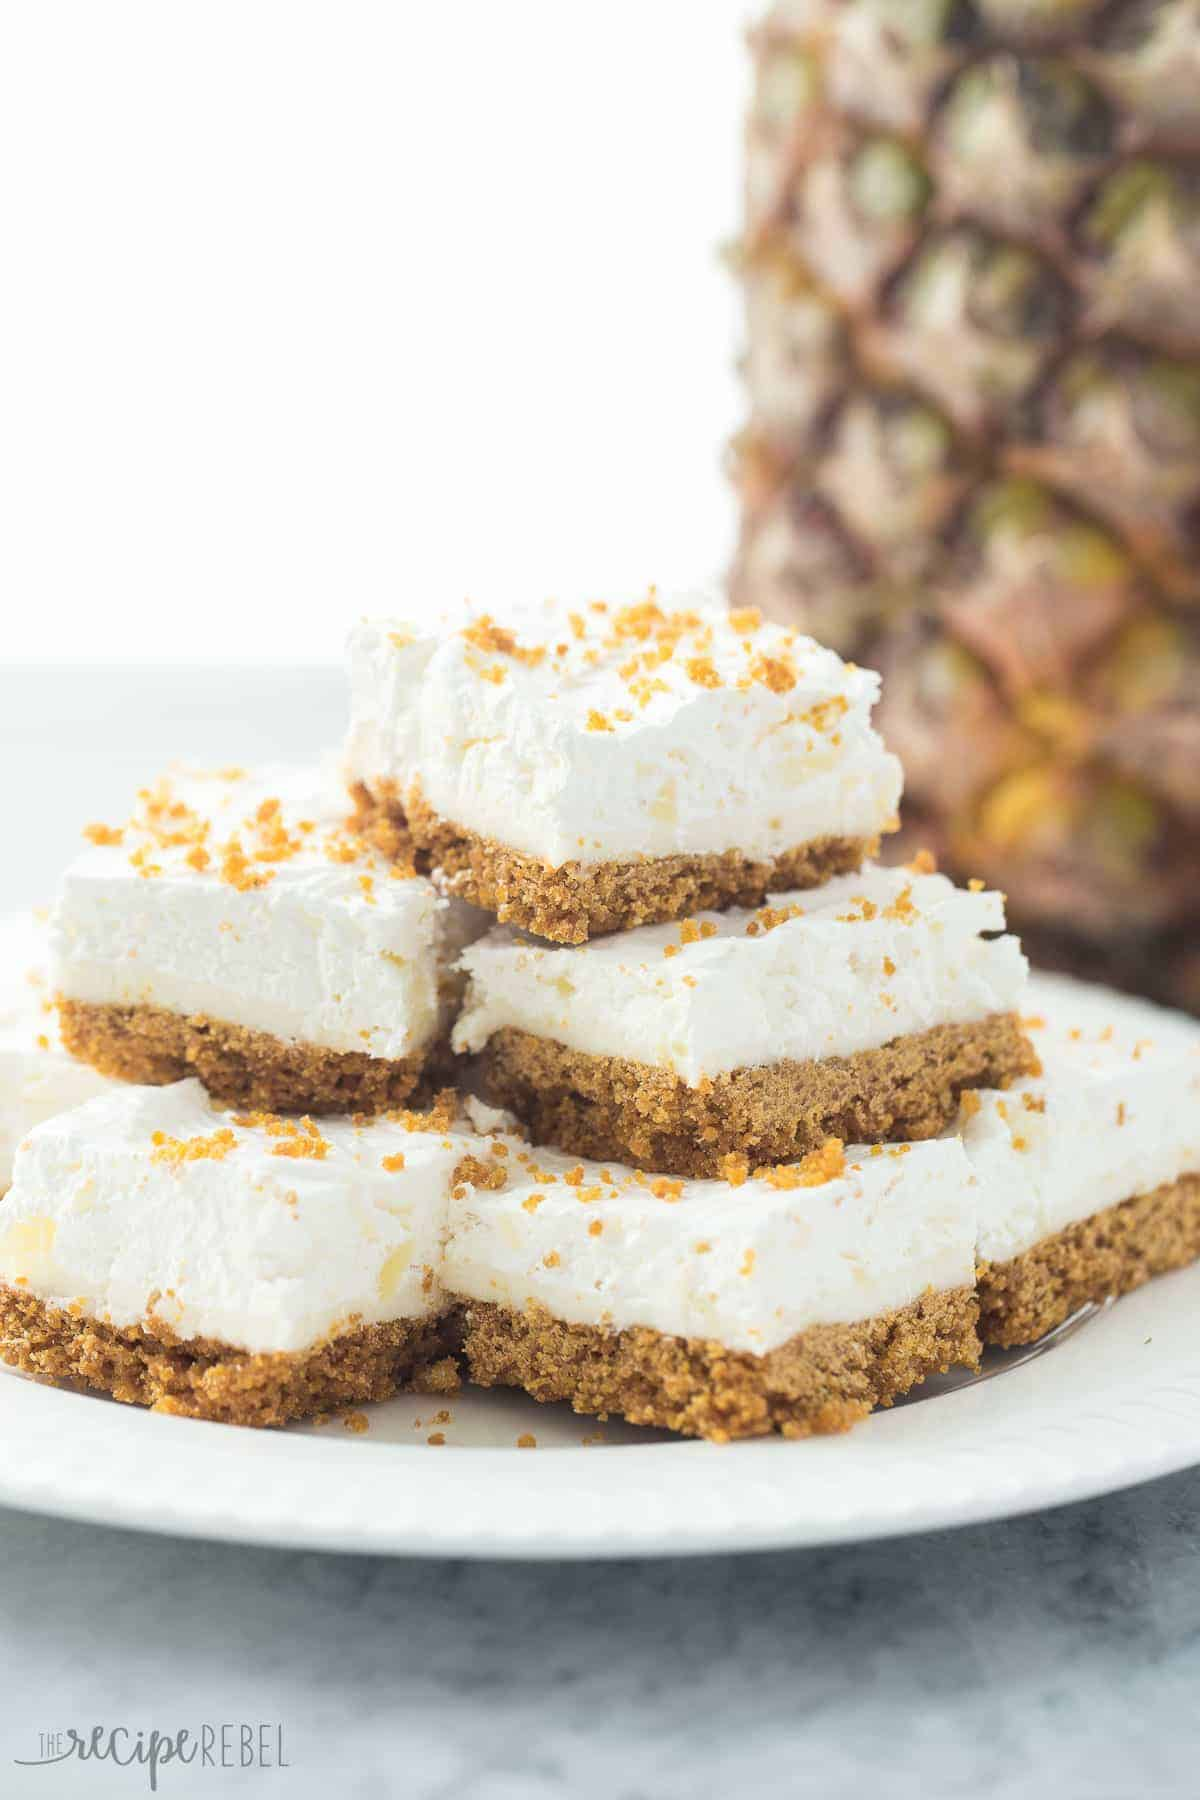 My version of my Mom's Pineapple Squares -- almost no bake dessert that's perfect for Spring or Easter! Light and fluffy and full of crushed pineapple!